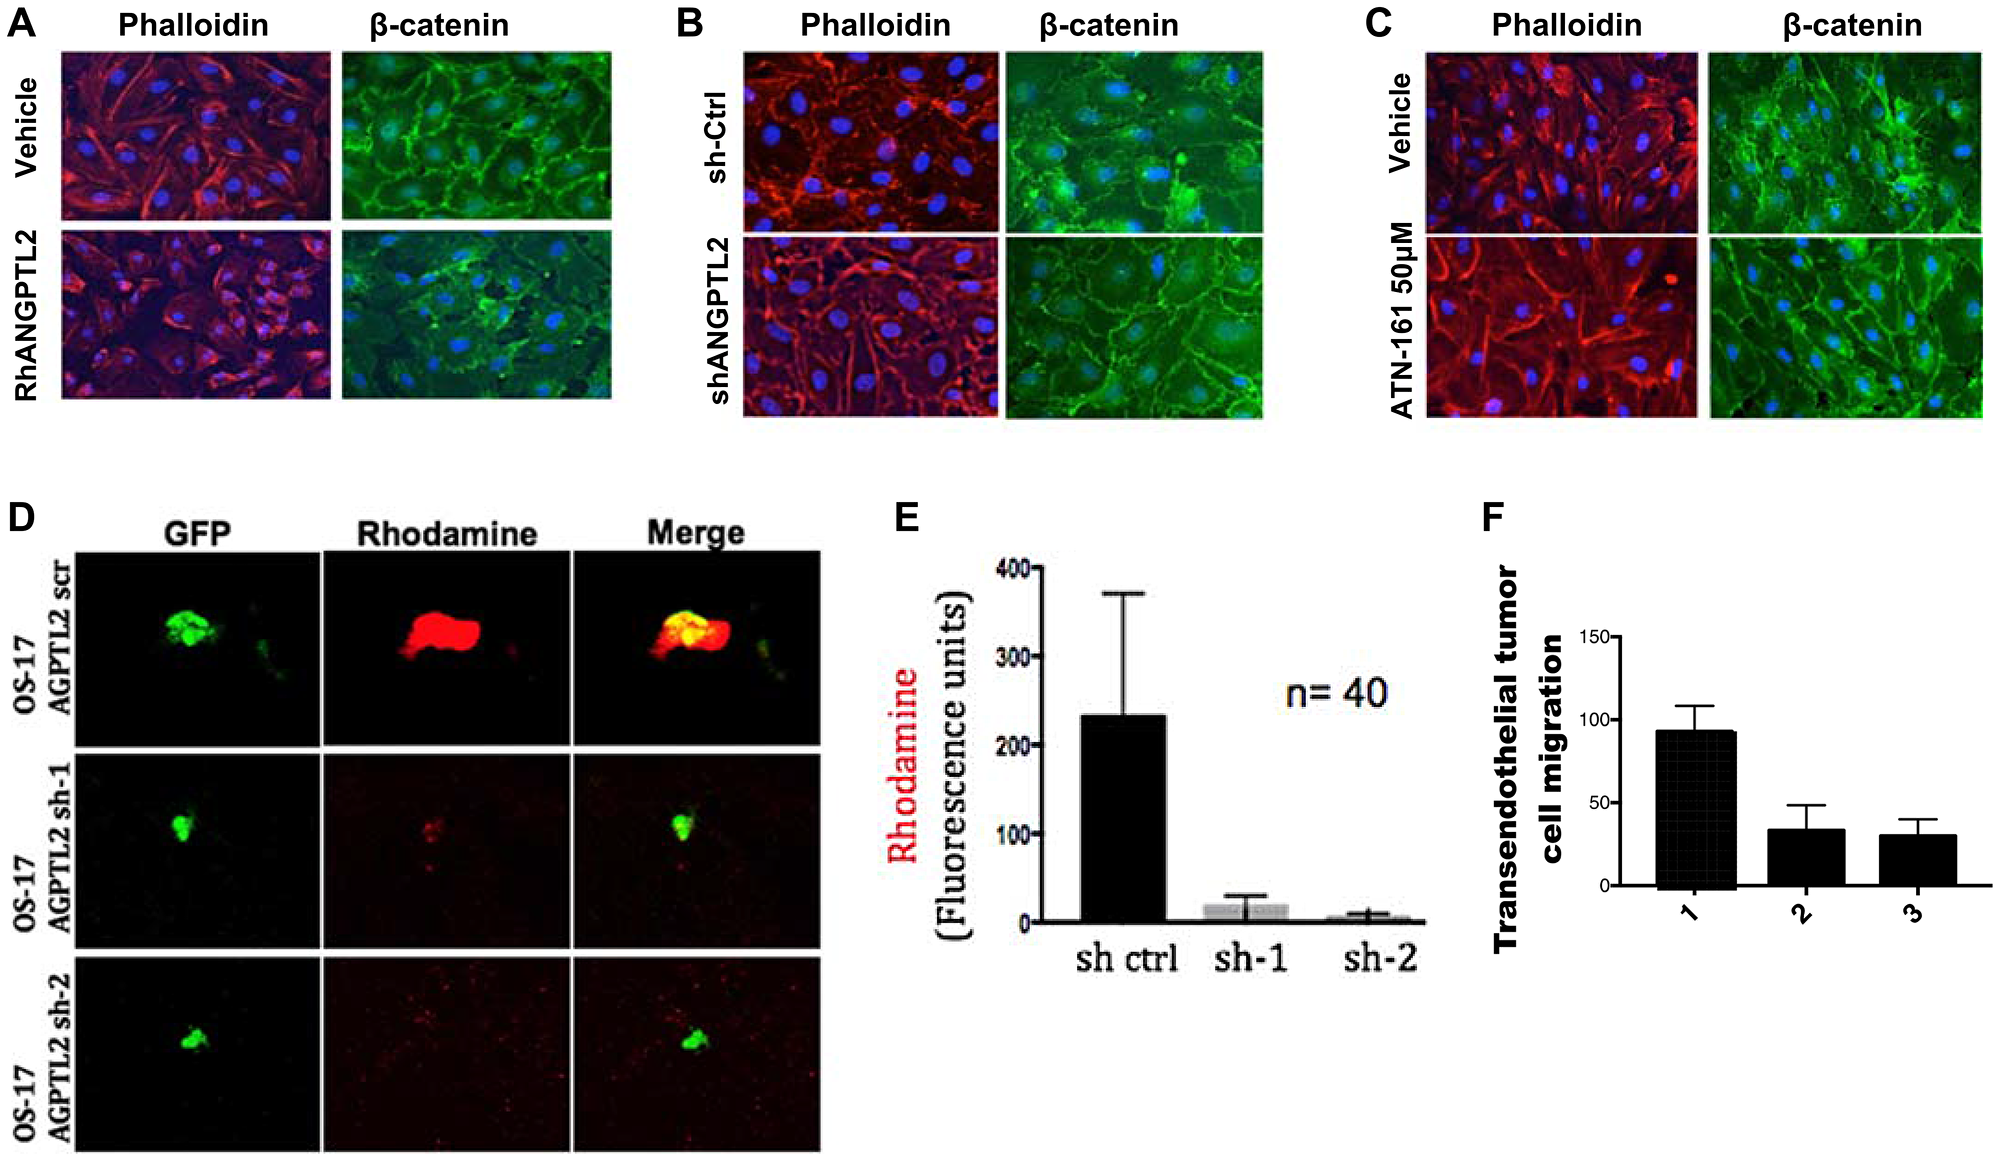 Tumor-secreted ANGPTL2 promotes osteosarcoma metastasis by mediating endothelial monolayer disruption, lung capillary permeability, and trans-endothelial tumor cell migration.